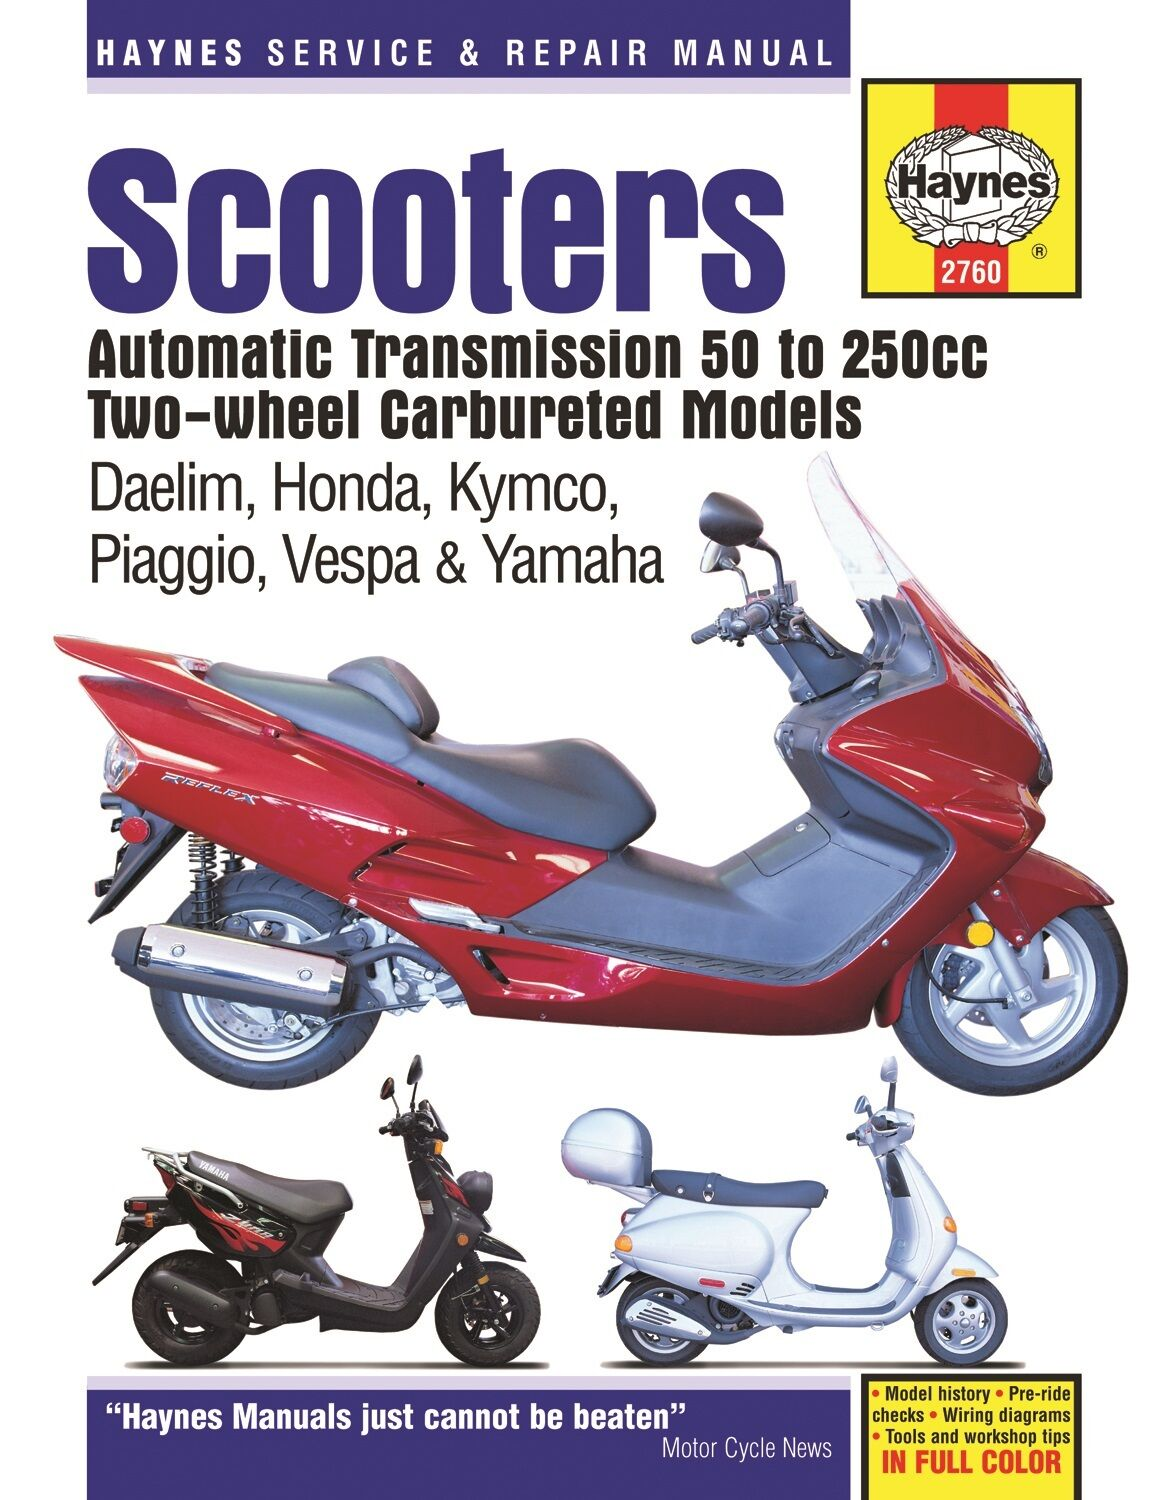 Haynes Manual 2760 Twist Go Scooters Daelim Honda Kymco Piaggio Chf50 Scooter Wiring Diagram 1 Of 1free Shipping